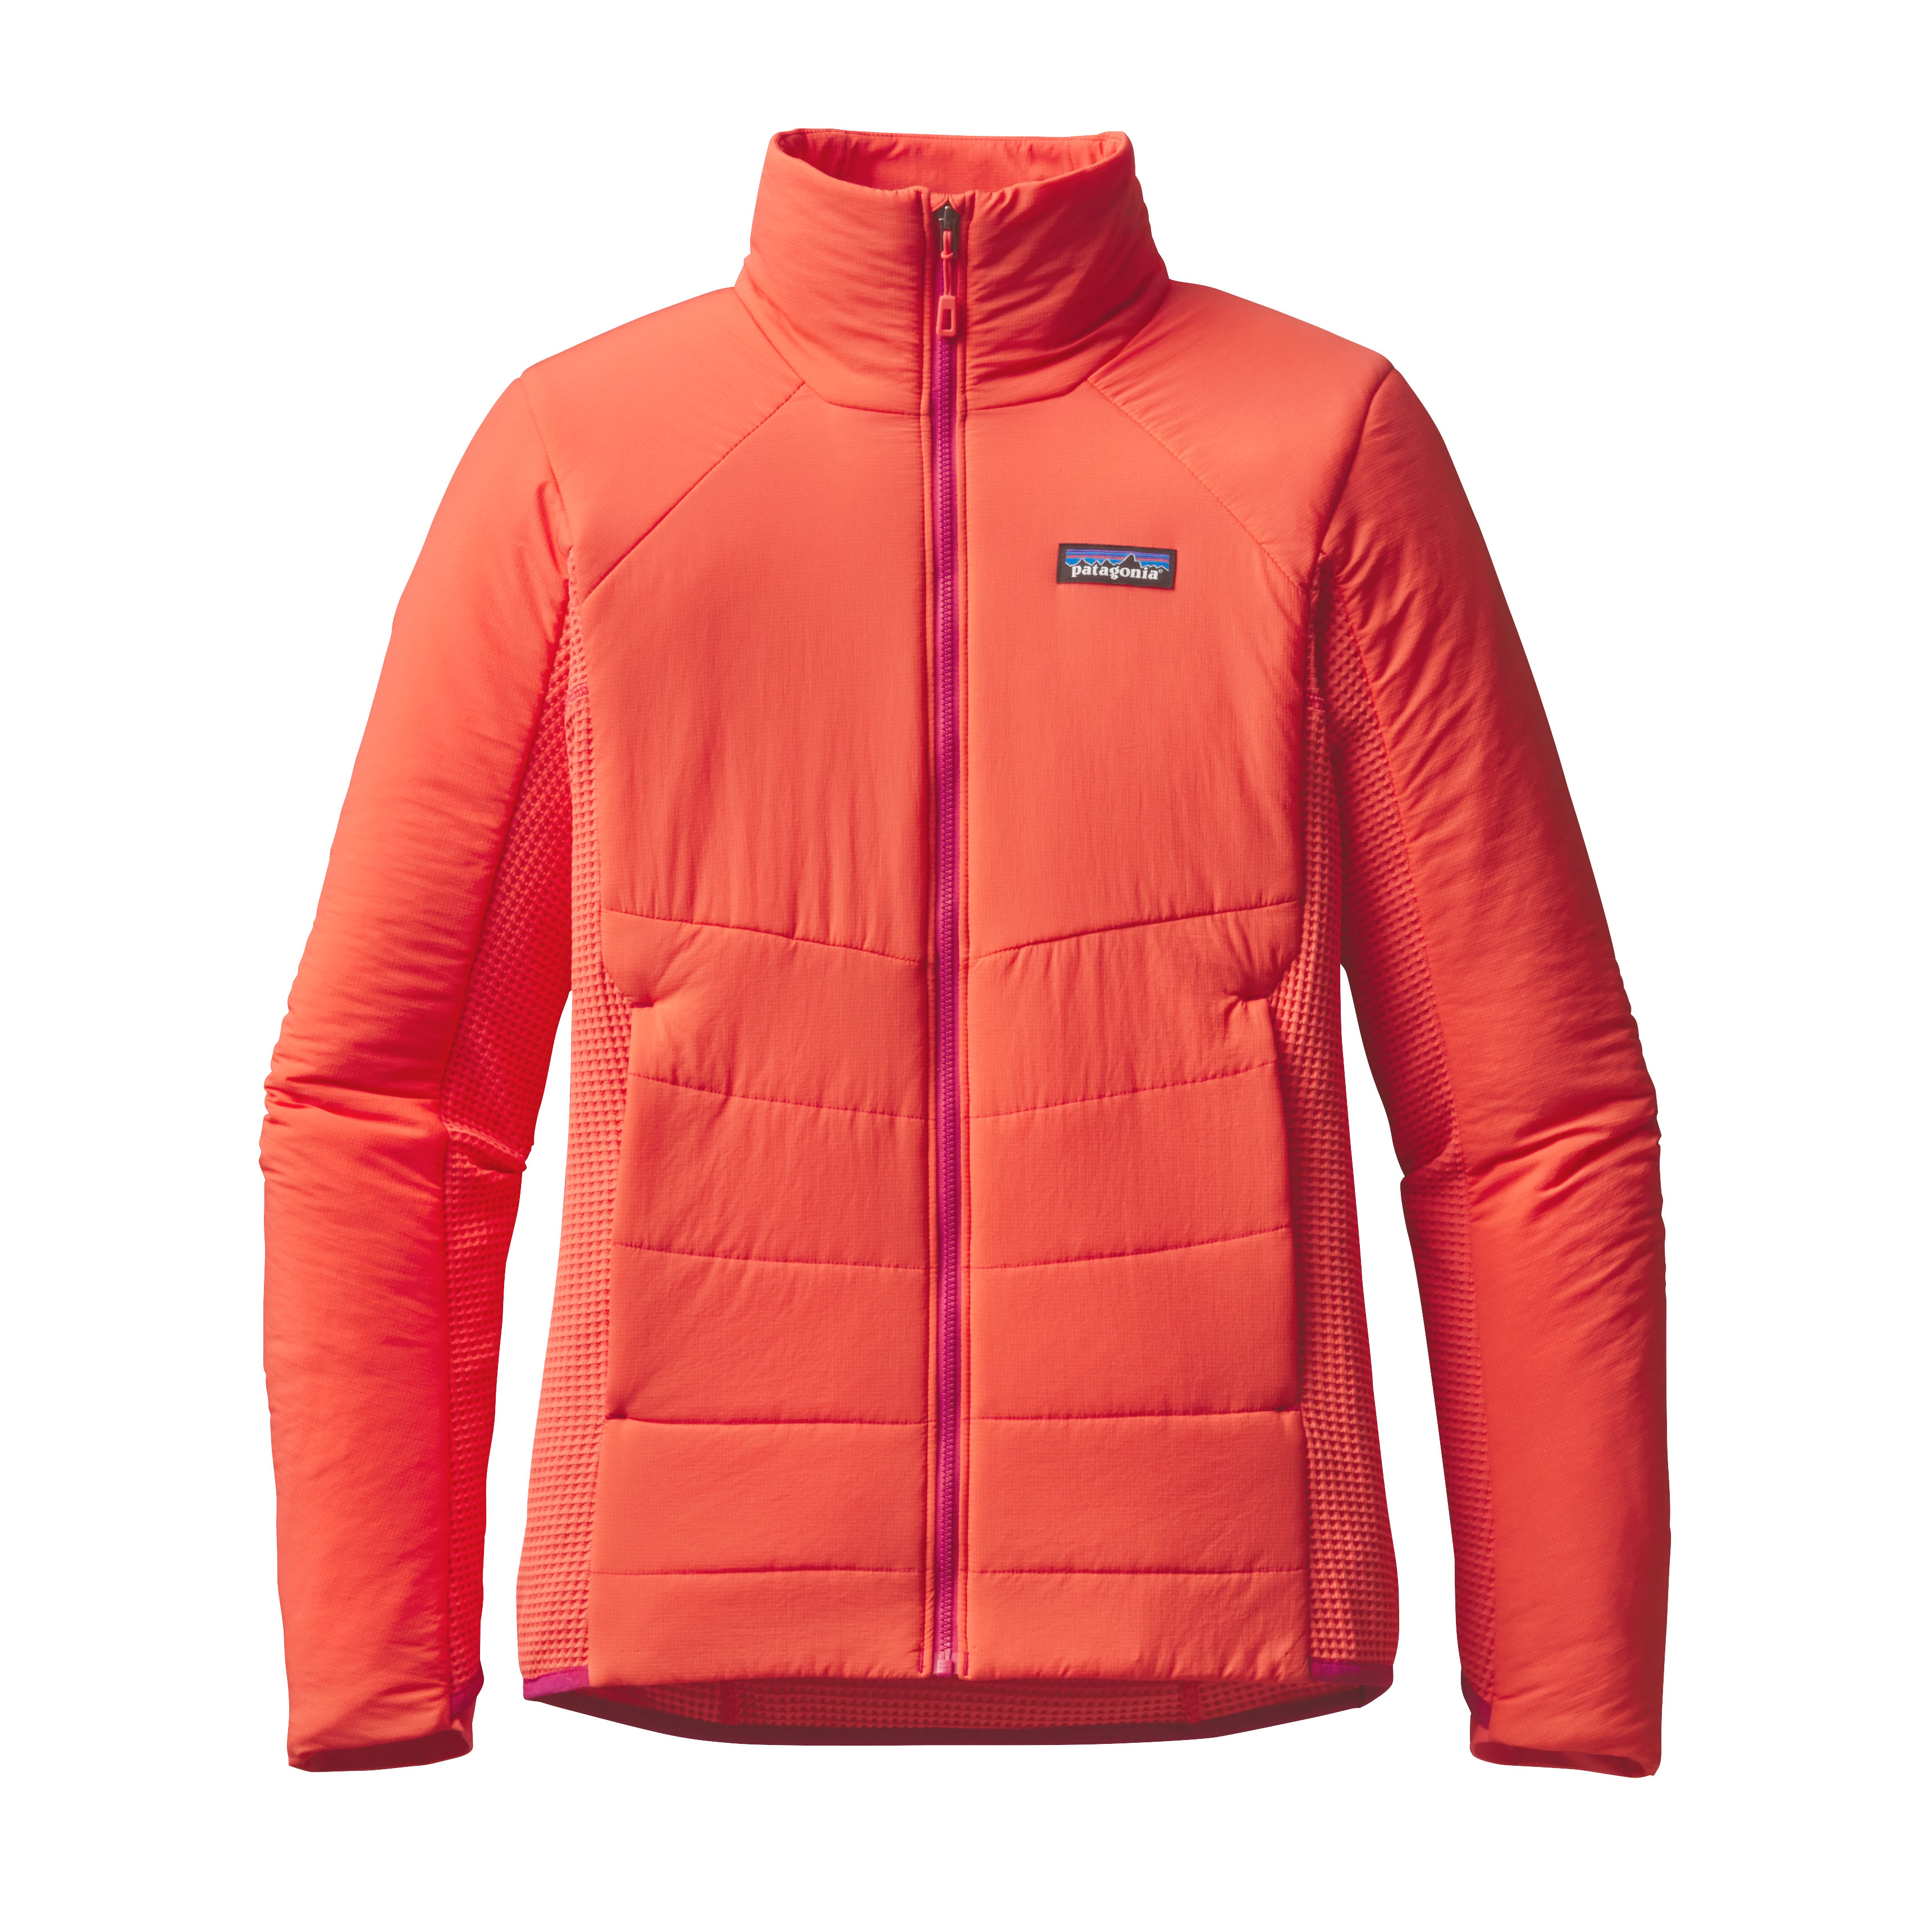 6454a9803 Five Of The Best Insulated Mid-Layers For Winter 2018 - Pretty Gritty